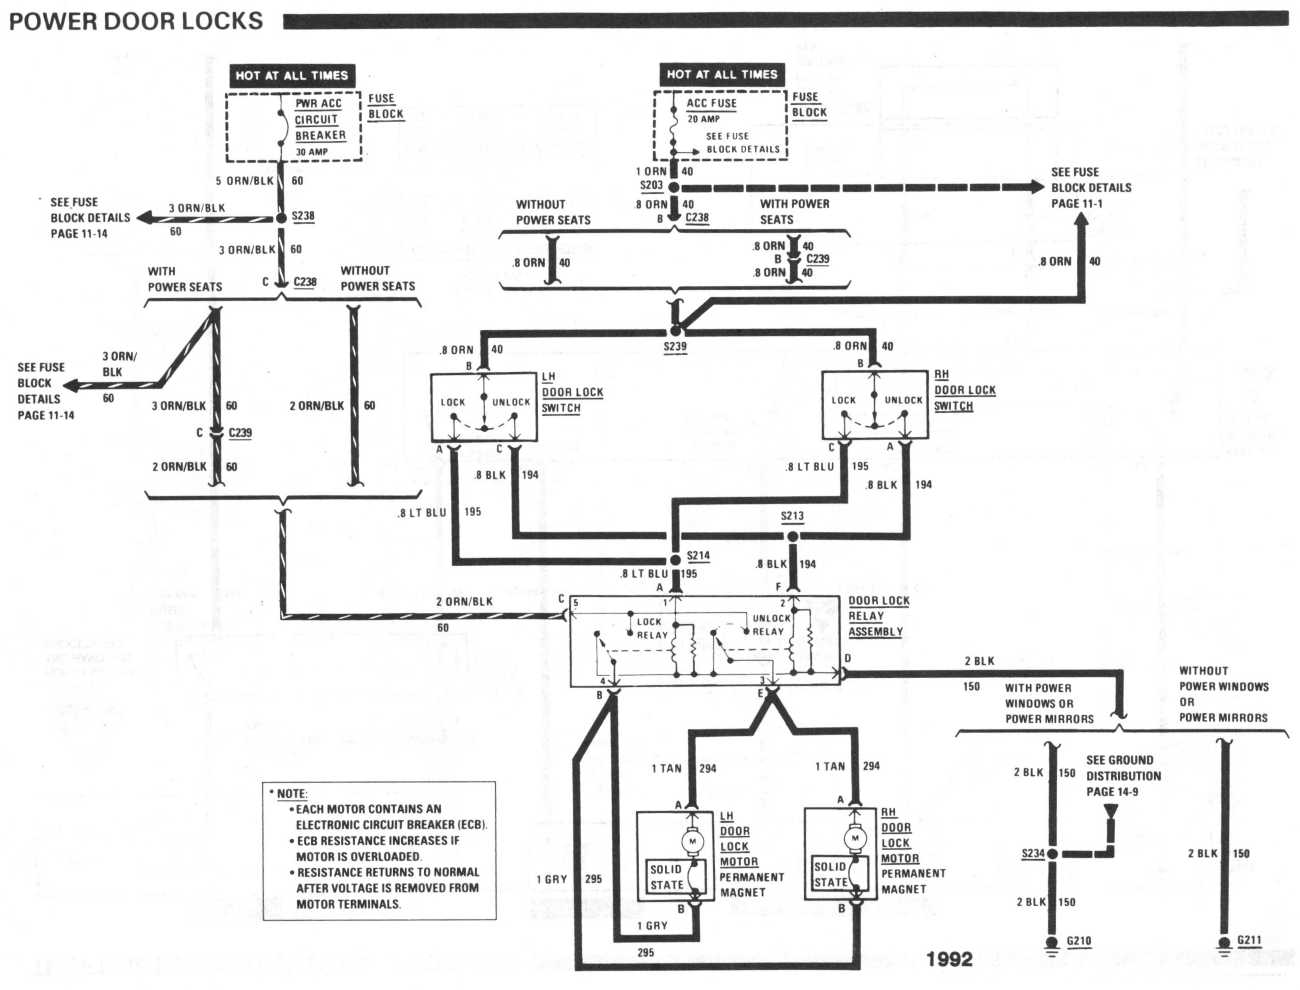 wiring diagram for 95 chevy camaro convertible #6 95 Buick Lesabre Wiring Diagram wiring diagram for 95 chevy camaro convertible